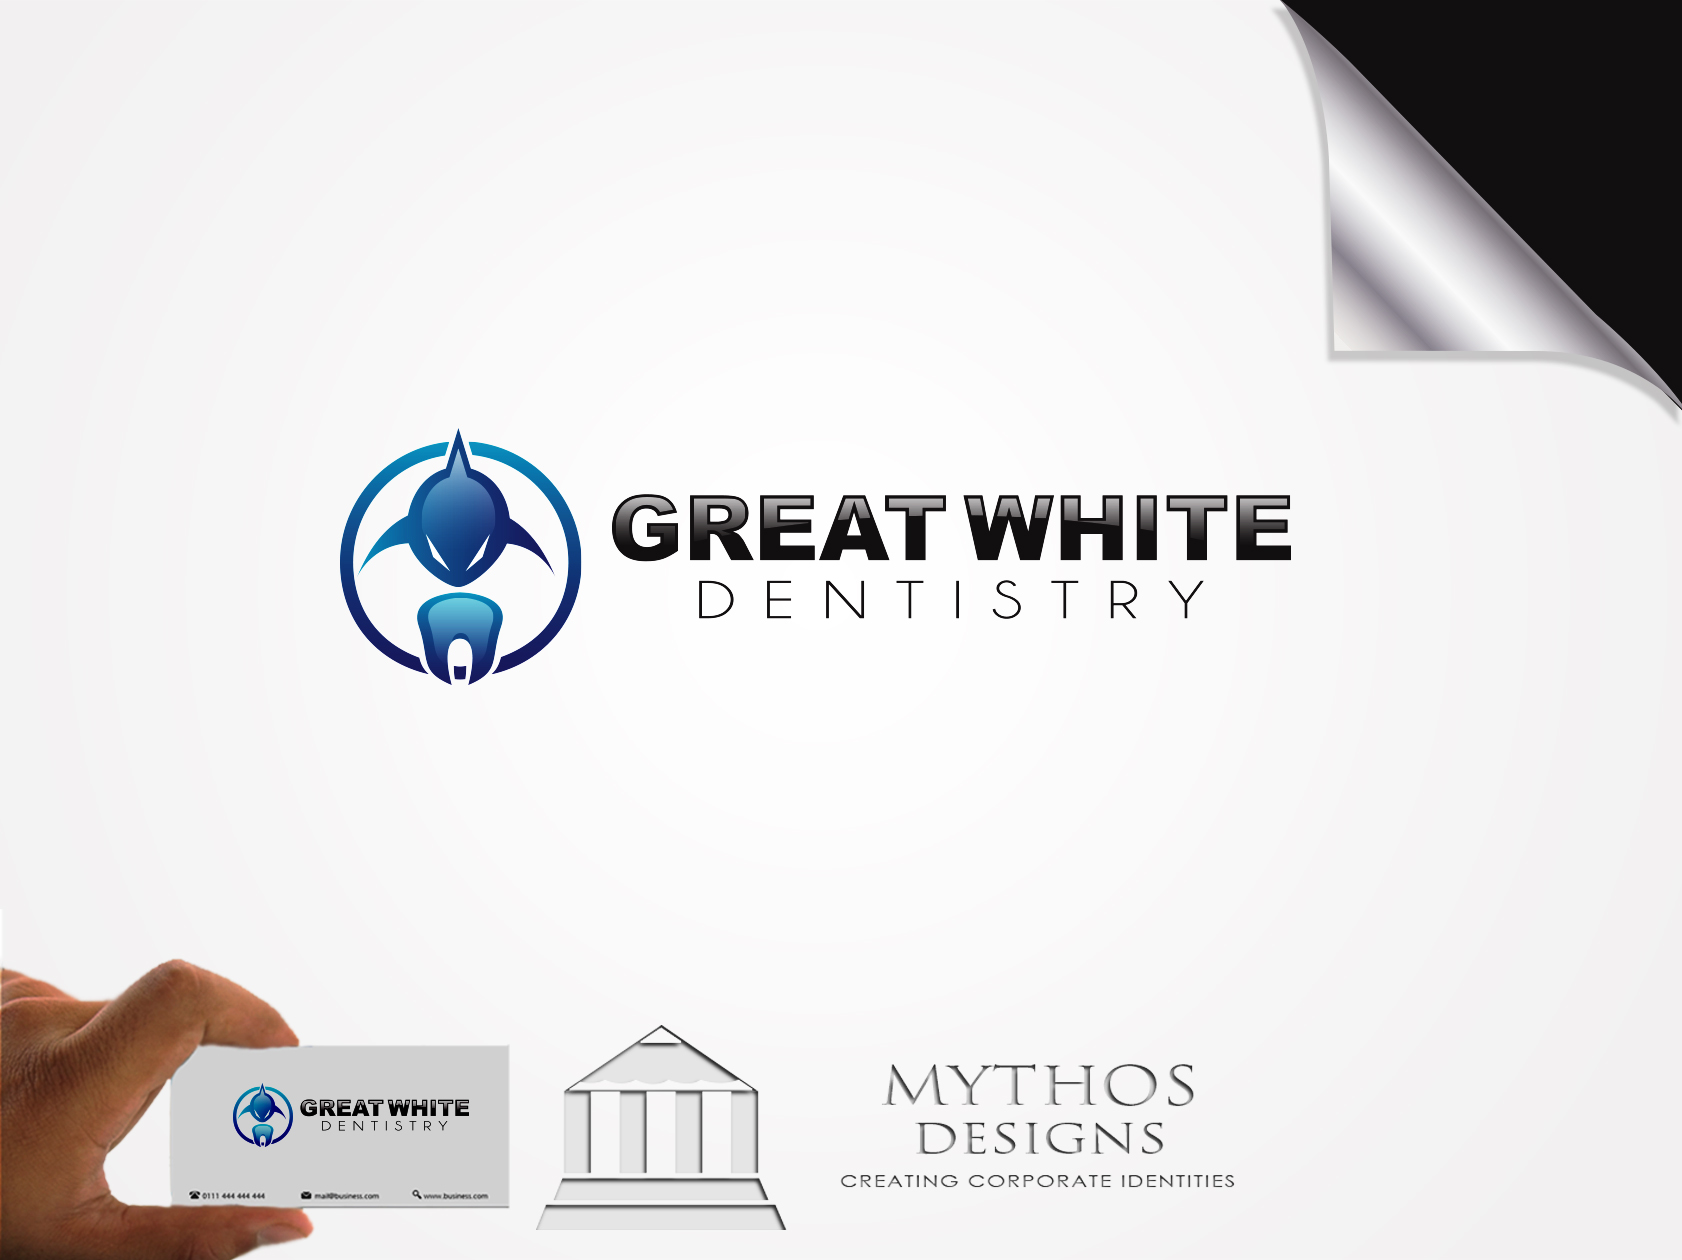 Logo Design by Mythos Designs - Entry No. 90 in the Logo Design Contest Logo Design for Great White Dentistry.